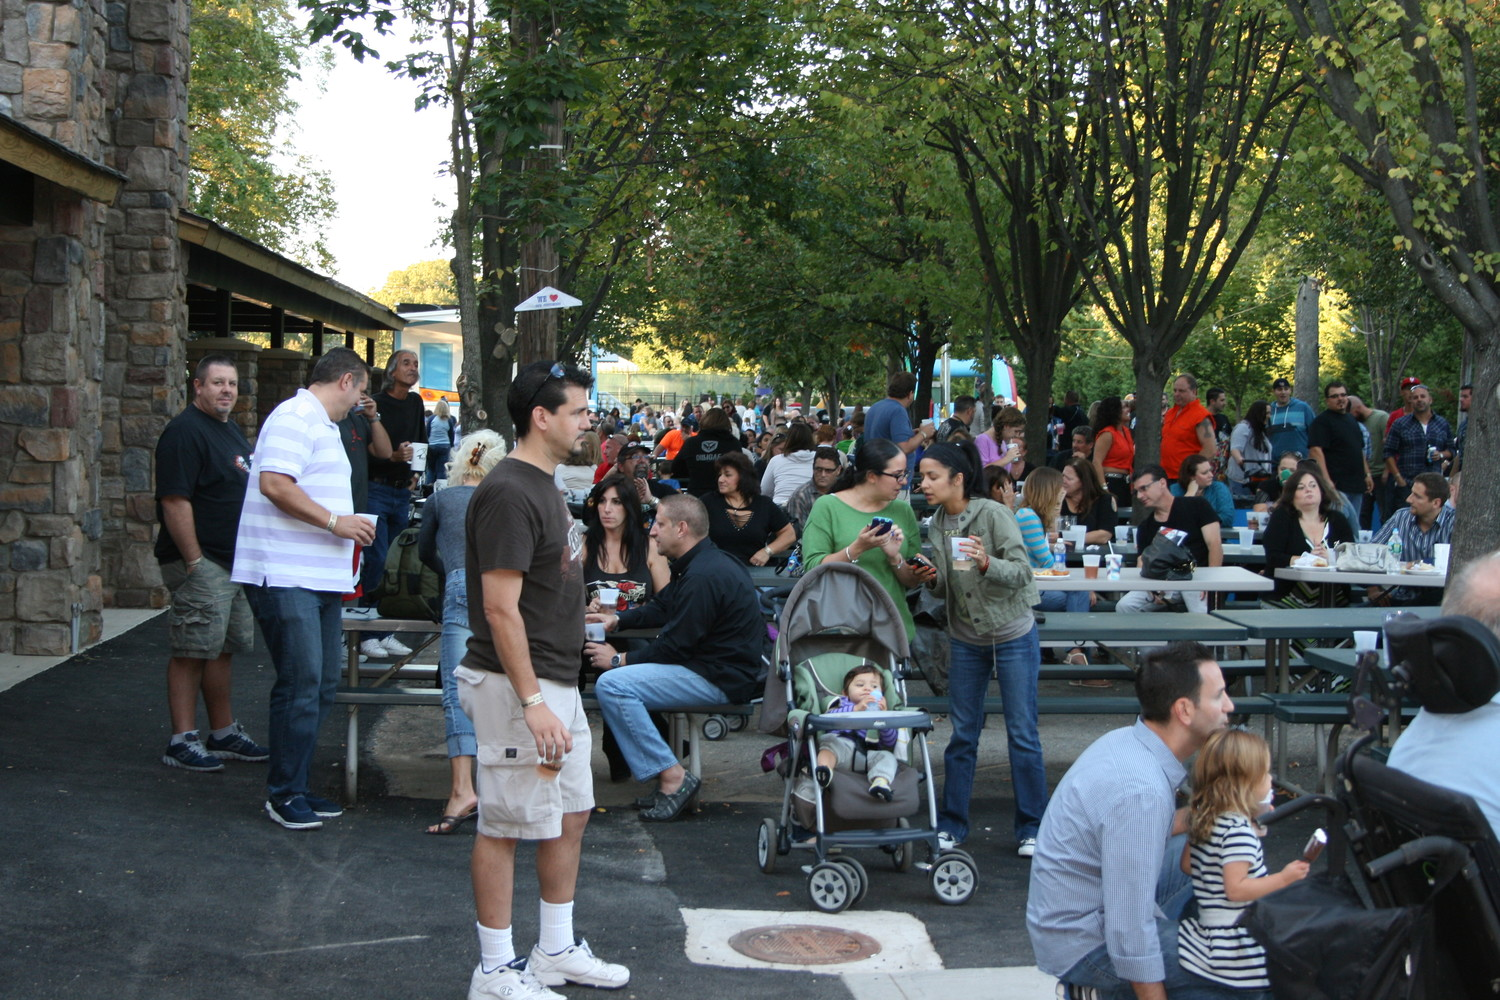 Thousands of residents of Franklin Square and nearby communities, left, gather at Plattdeutsche Park's garden for the annual concerts.